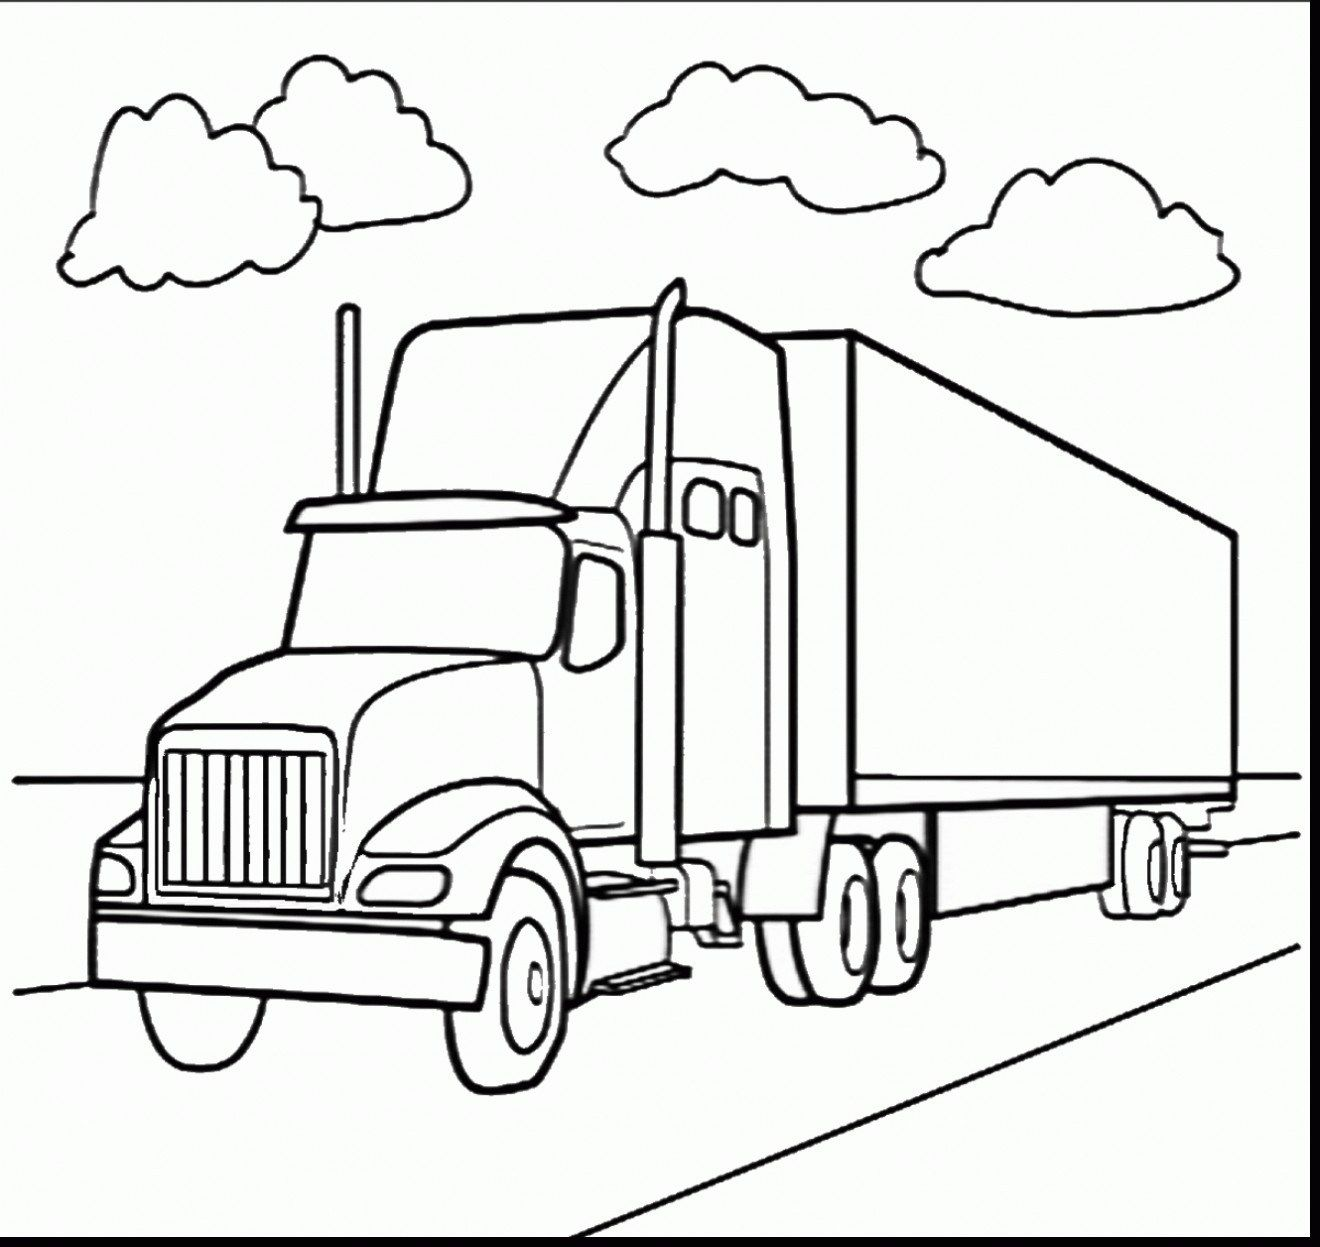 Semi Truck Coloring Pages Mack Coloring Pages At Getdrawings Free For Personal Use Mack Davemelillo Com Truck Coloring Pages Coloring Pages Coloring Sheets